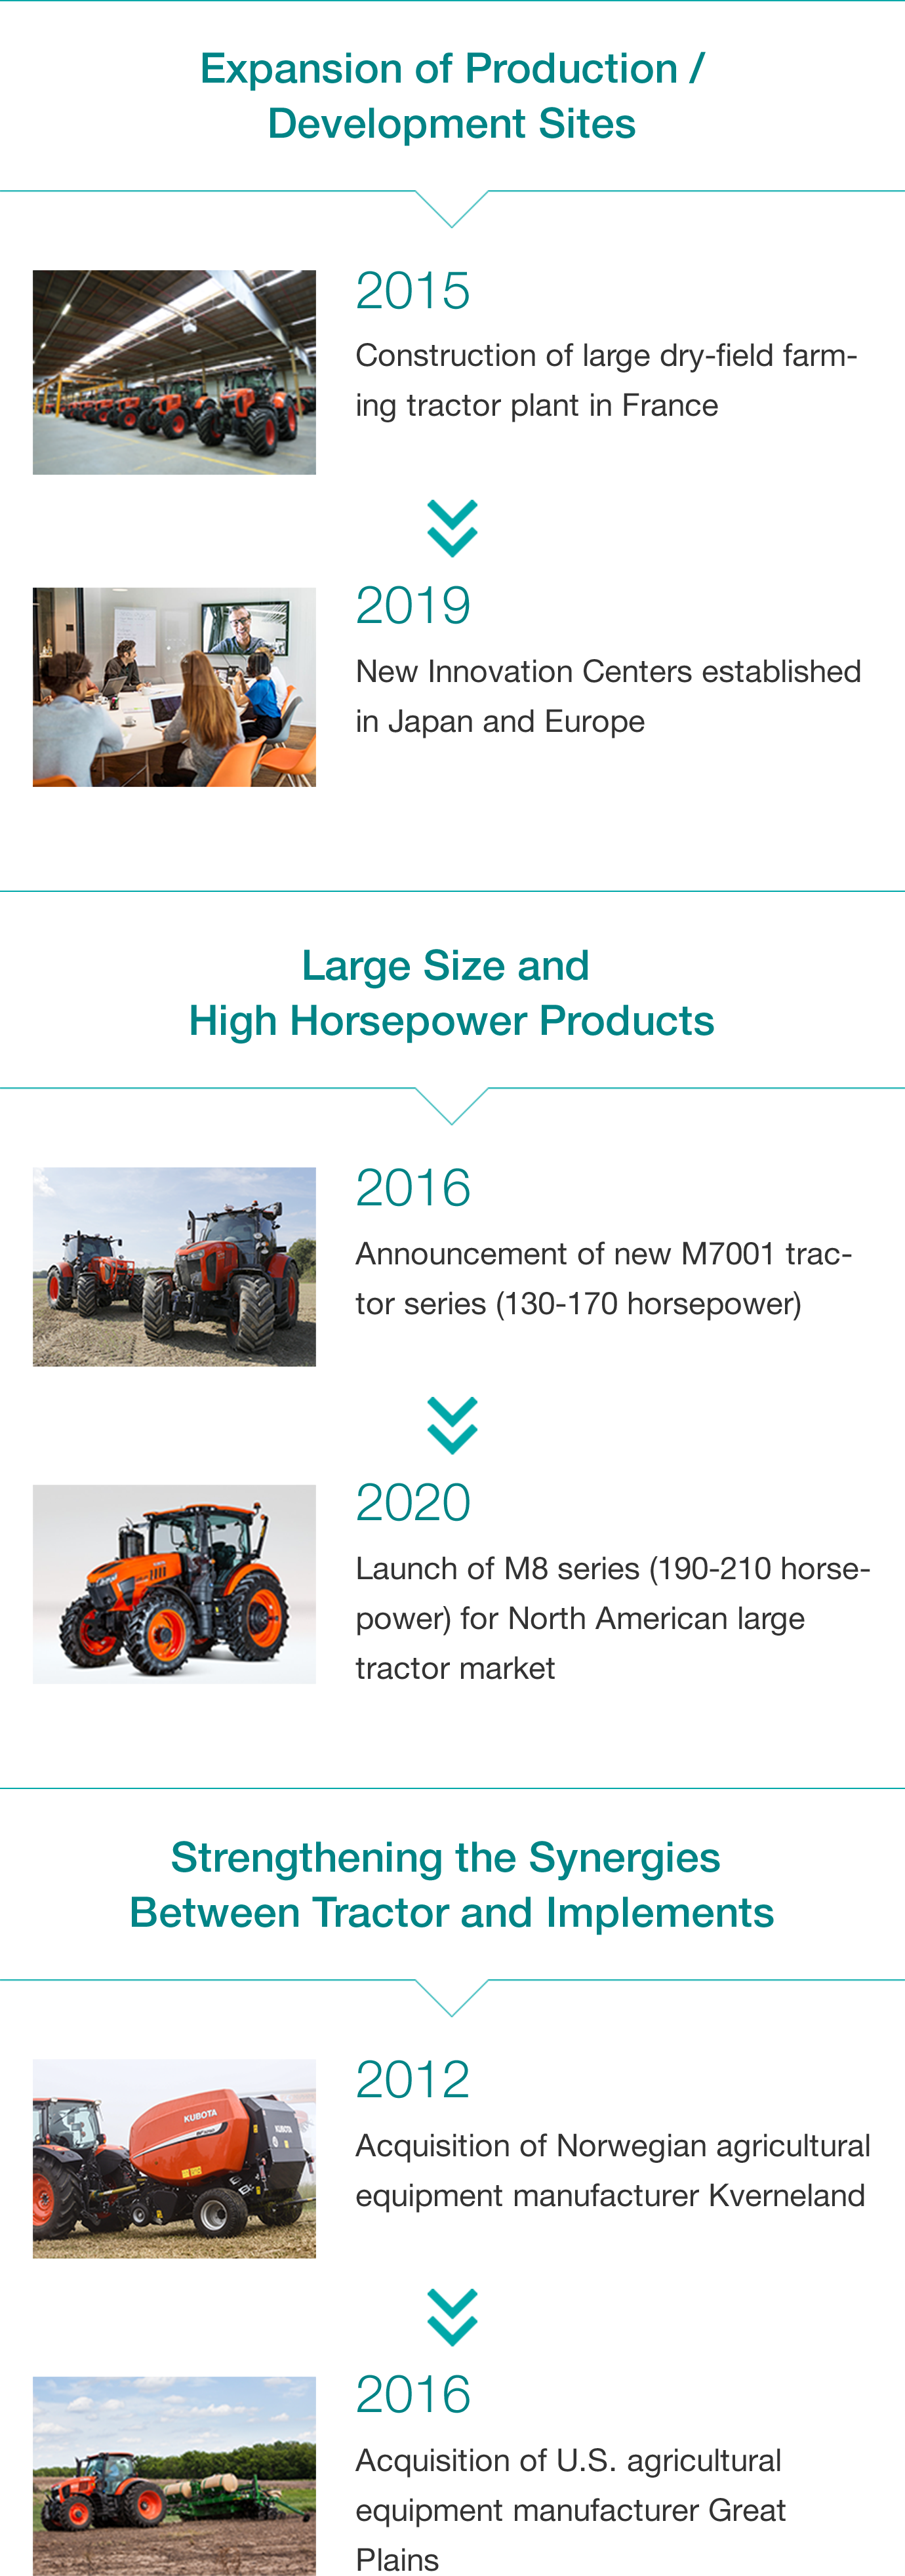 Expansion of Production/Development Sites: 2015 - Construction of large dry-field farming tractor plant in France, 2019 - New Innovation Centers established in Japan and Europe, Large Size and High Horsepower Products: 2016 - Announcement of new M7001 tractor series (130-170 horsepower), 2020 - Launch of M8 series (190-210 horsepower) for North American large tractor market, Synergies Between Tractor and Implements: 2012 - Acquisition of Norwegian agricultural equipment manufacturer Kverneland, 2016 - Acquisition of U.S. agricultural equipment manufacturer Great Plains